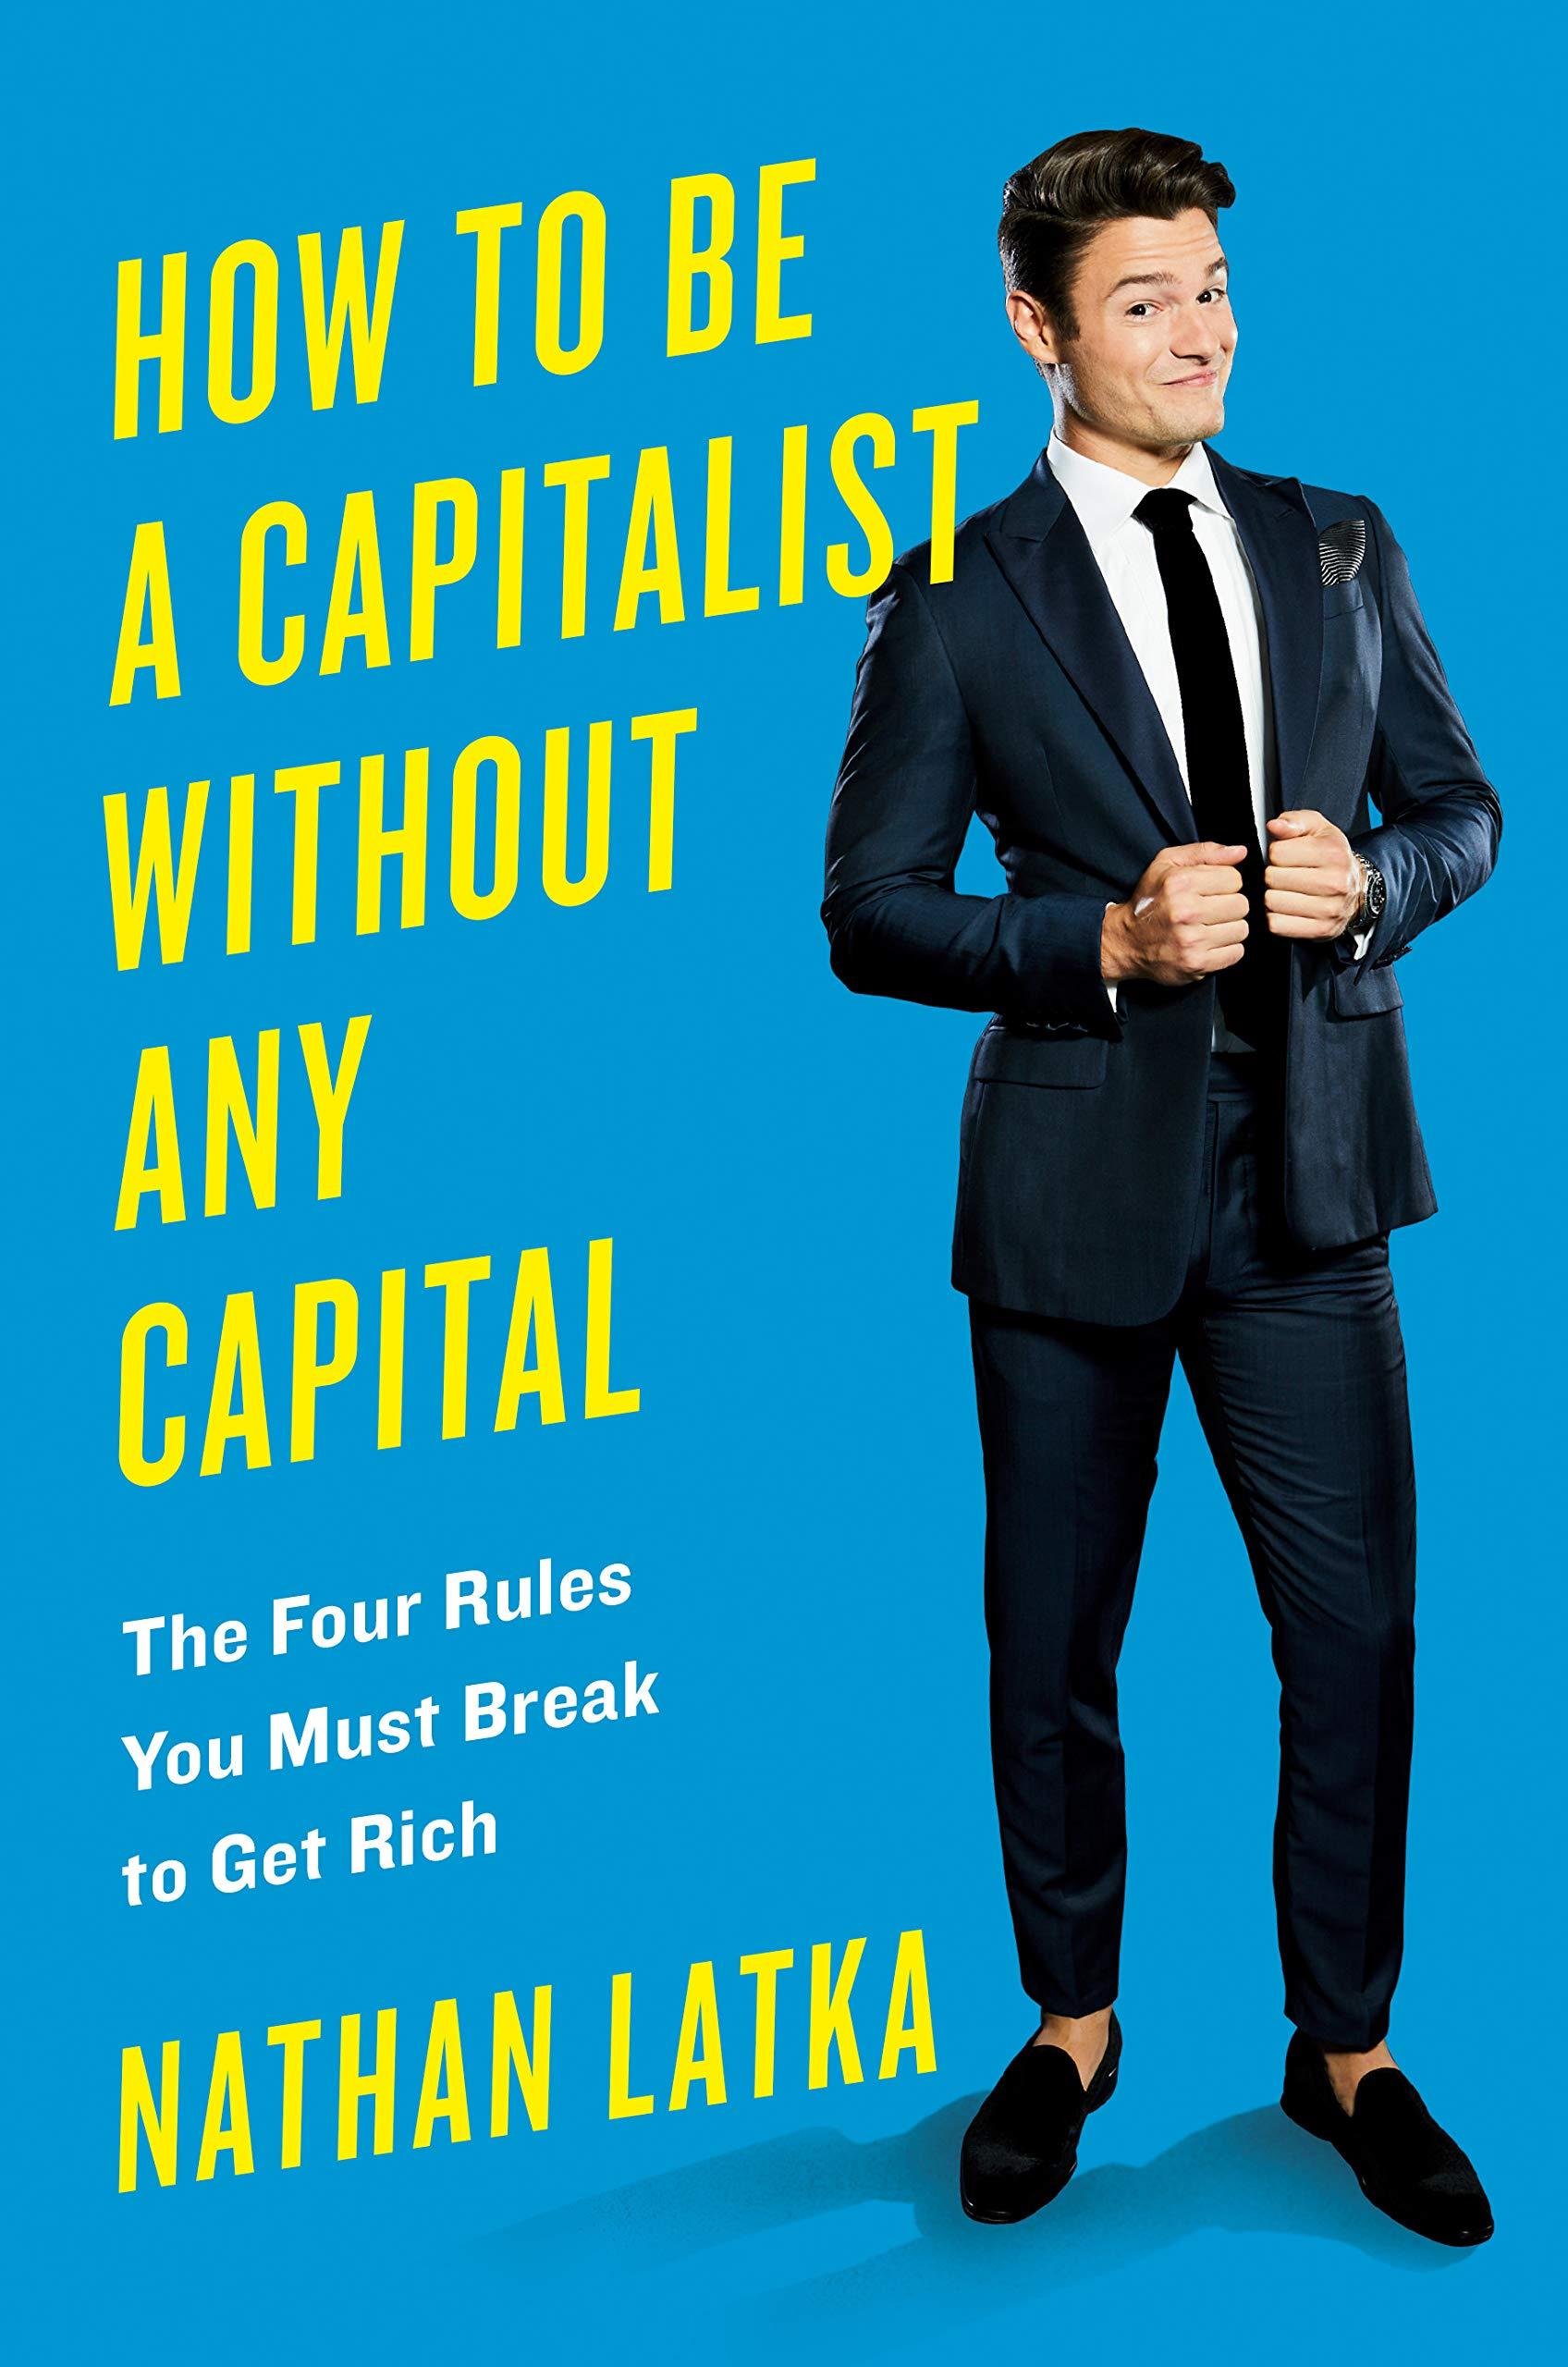 How to Be a Capitalist Without Any Capital by Nathan Latka Book Cover